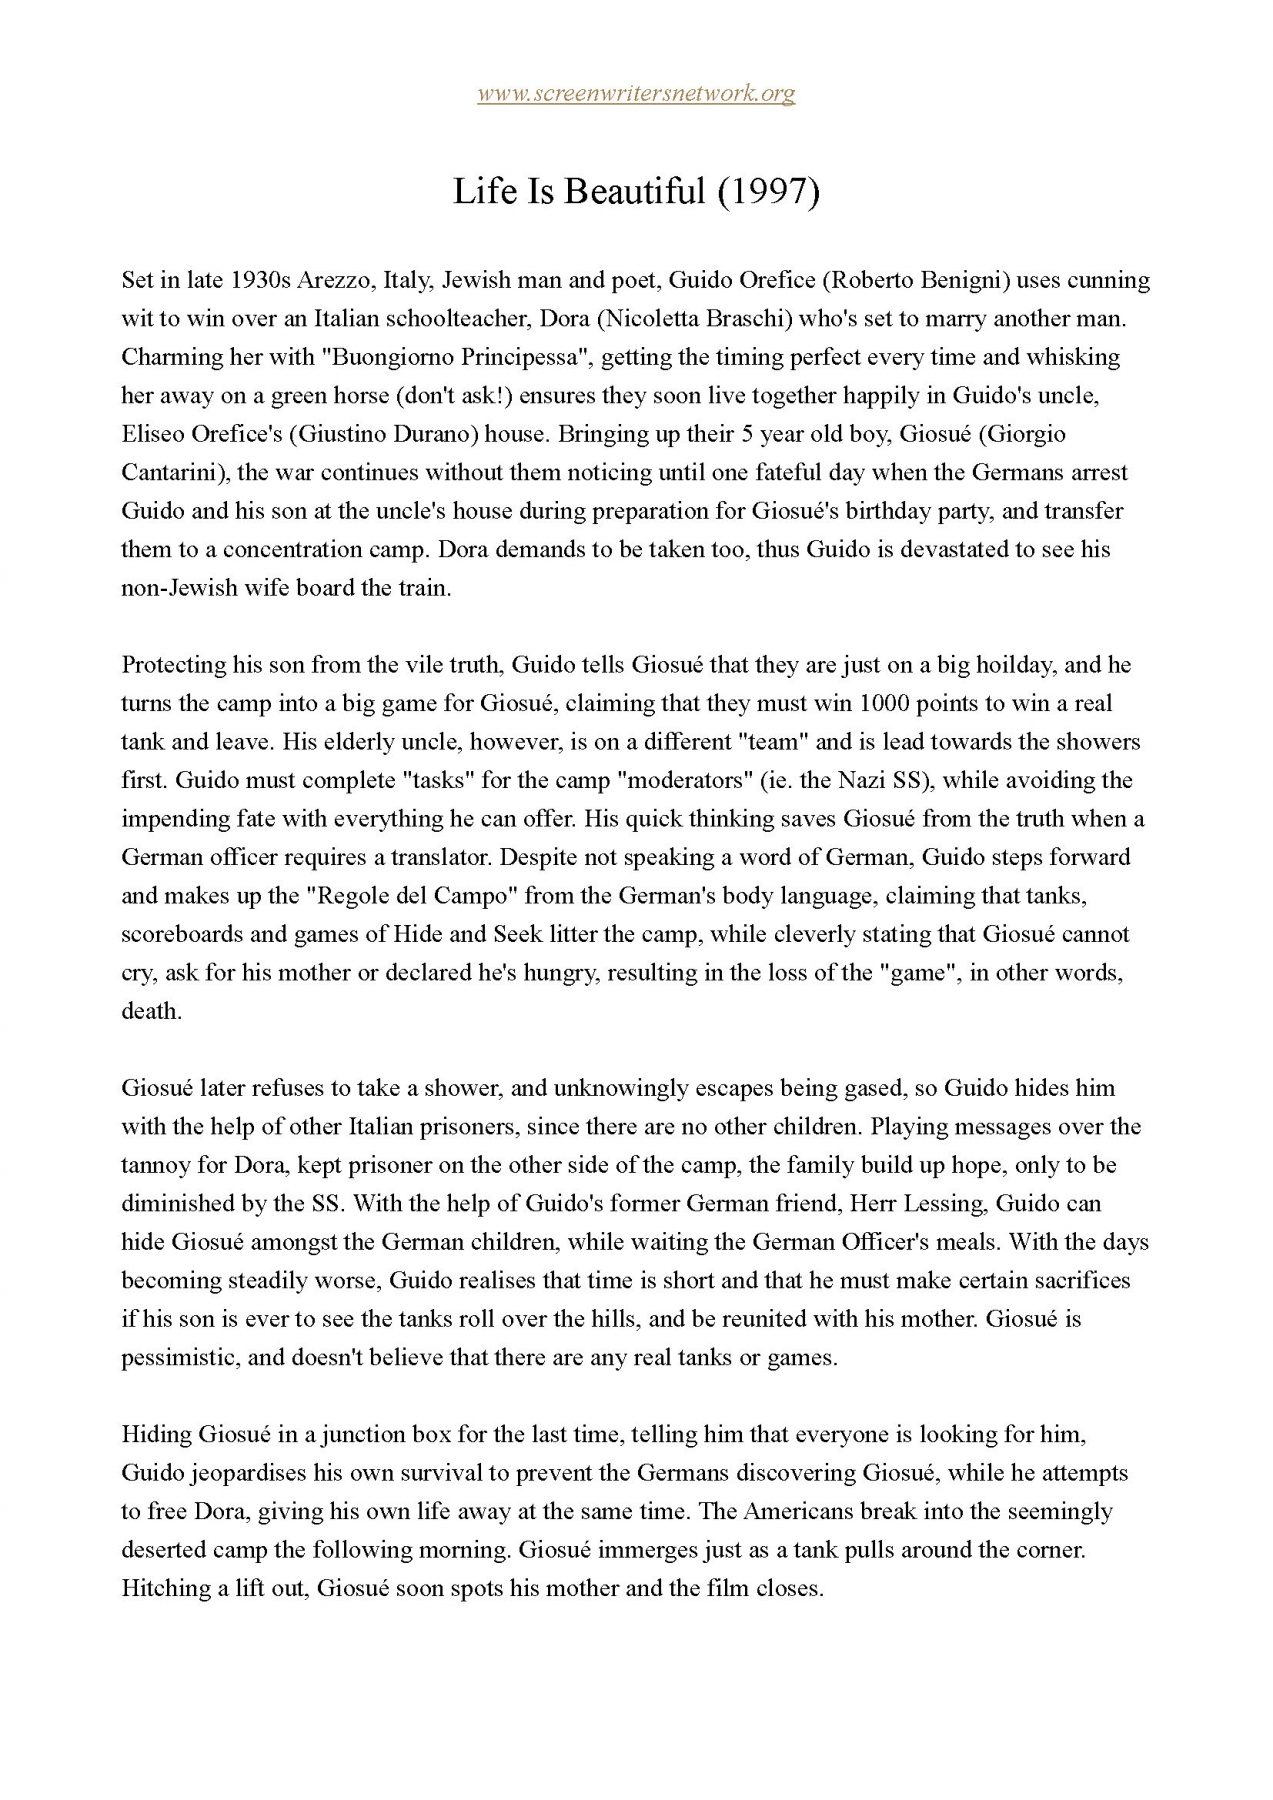 Life Is Beautiful One Page Synopsis